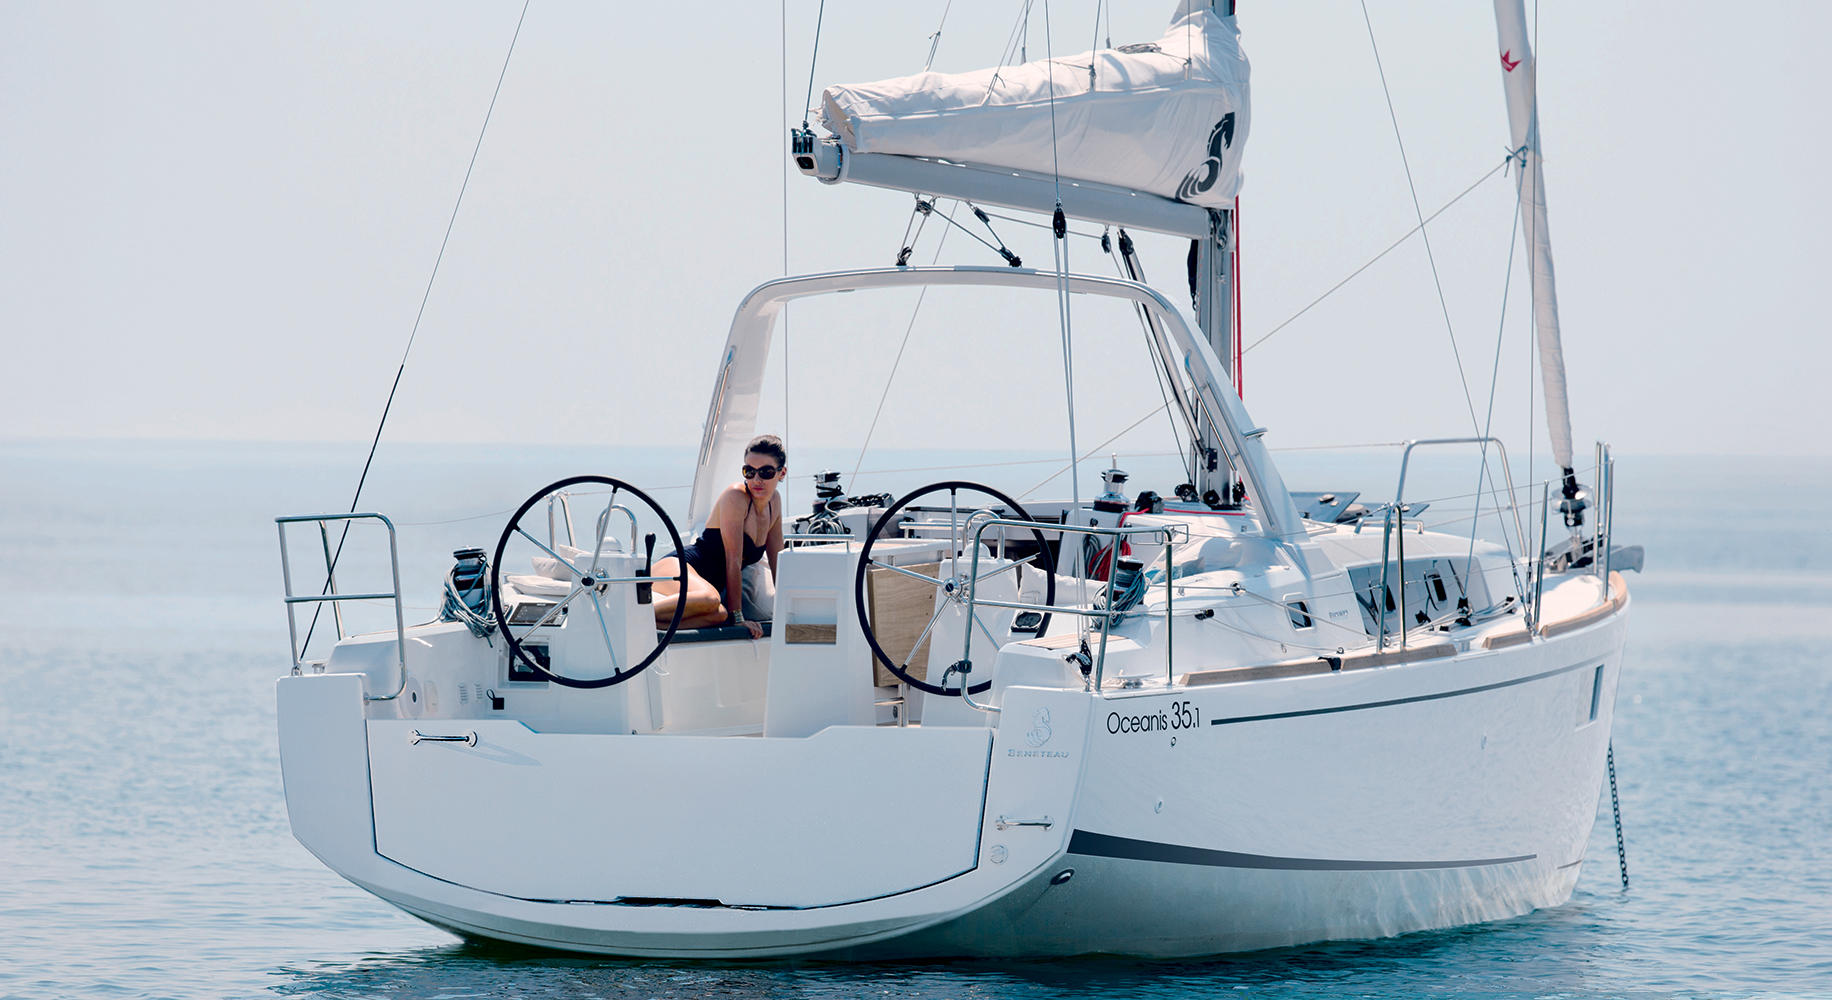 Beneteau Oceanis 35.1 Sailboat for sale